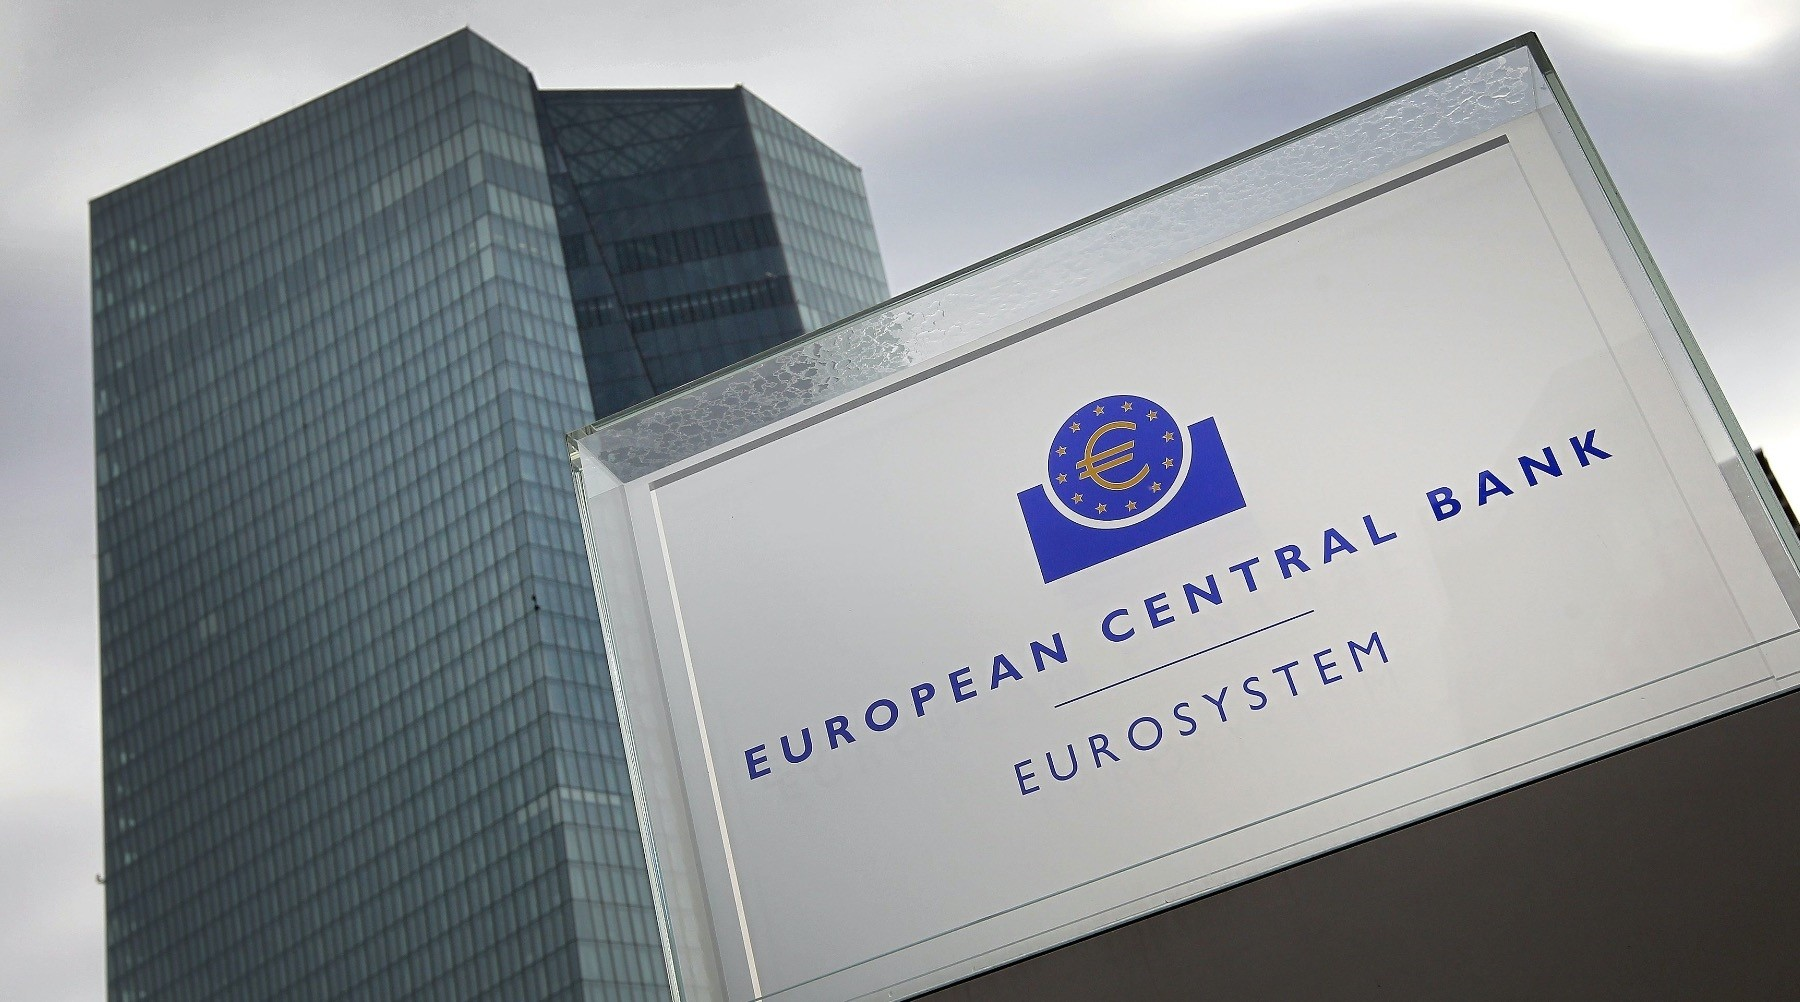 The headquarters of the European Central Bank in Frankfurt, Oct. 26, 2017.